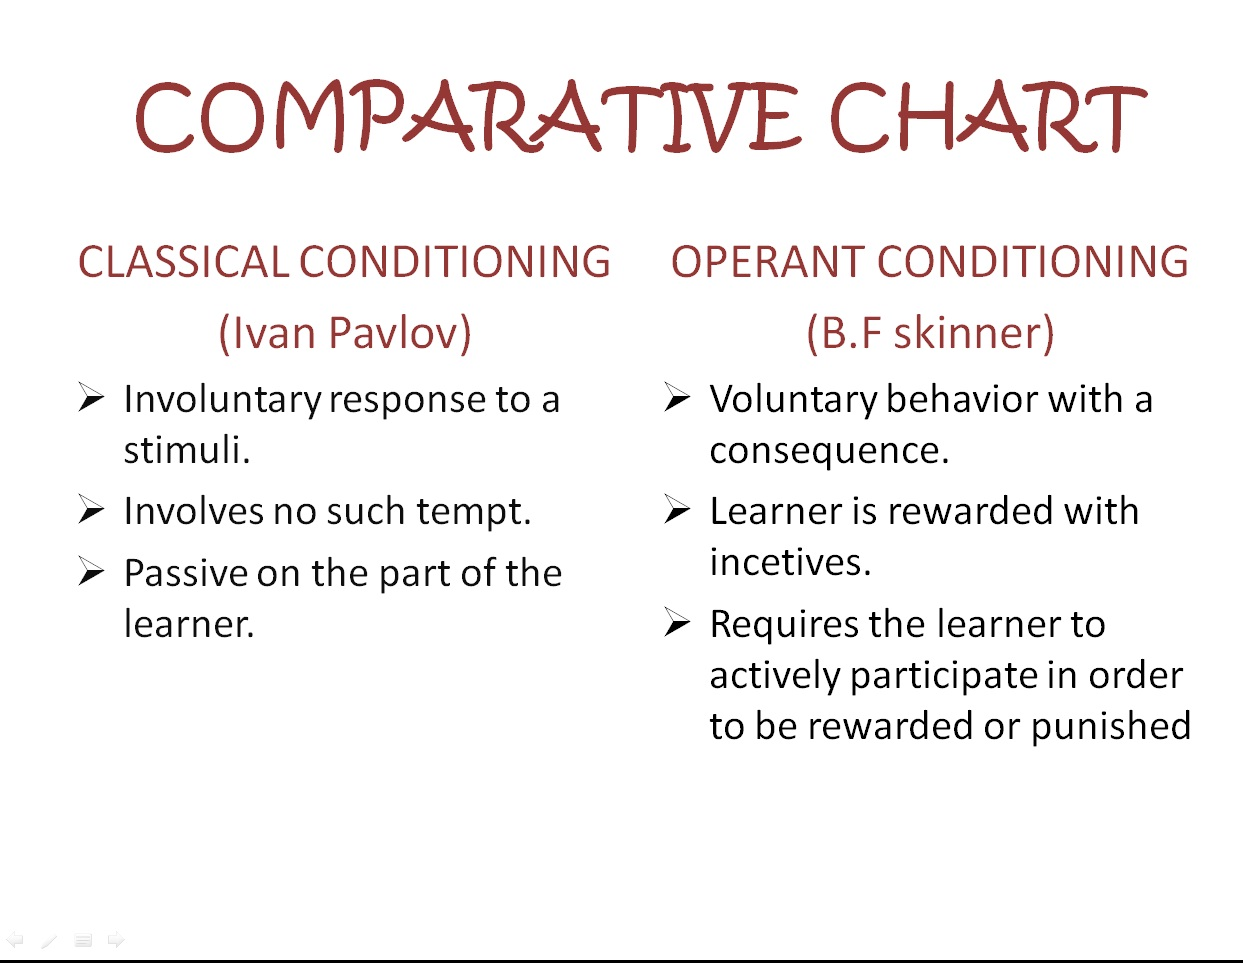 Behaviourism Theory Comparative Chart Classical And